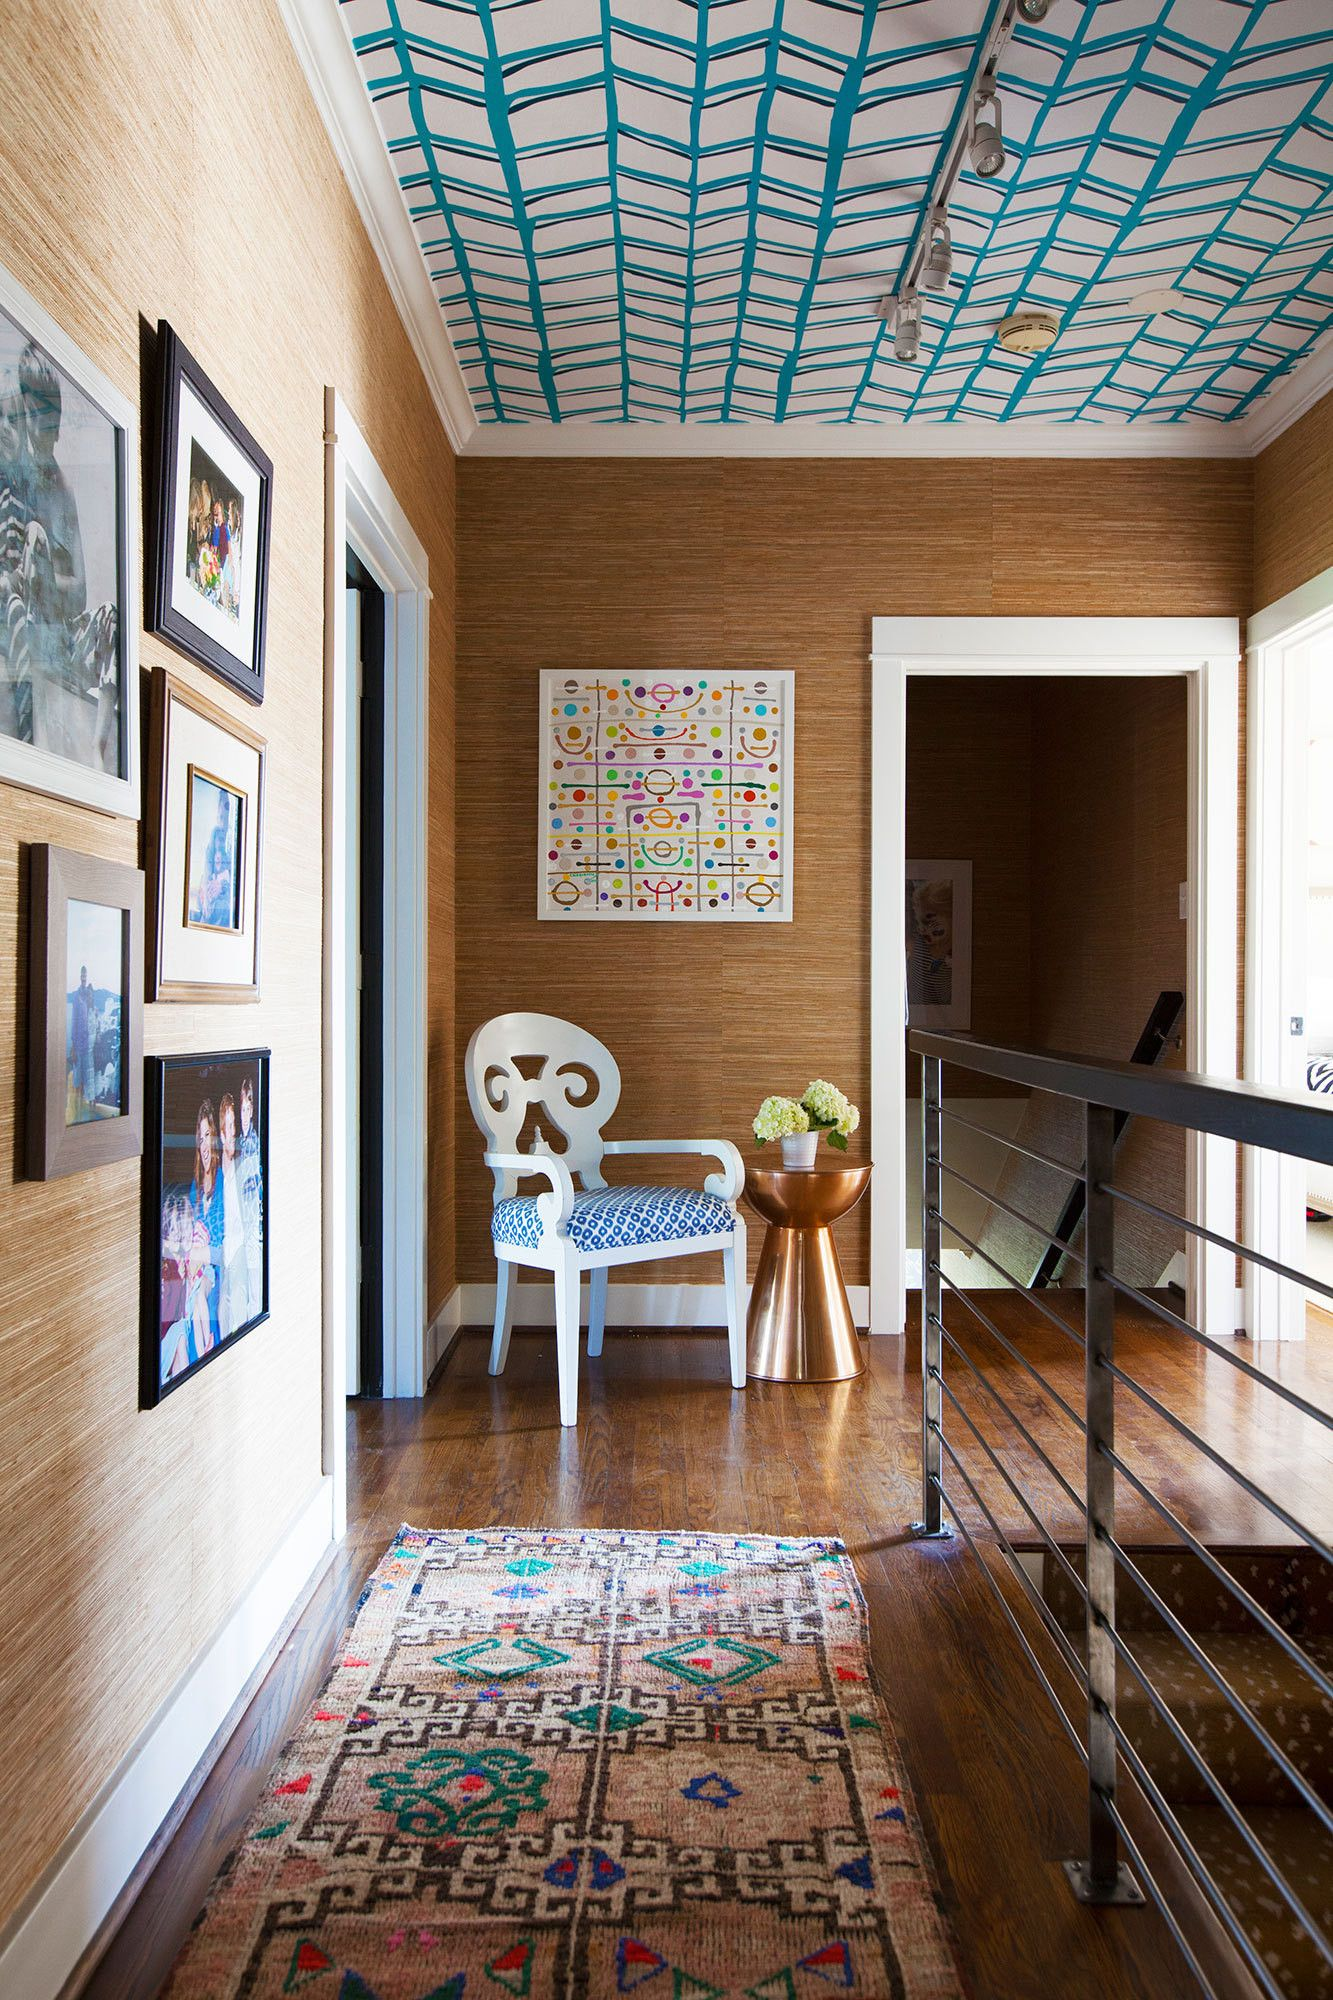 katie kime s colorful house in austin is everything blue wallpapered ceiling grasscloth walls and indie runner